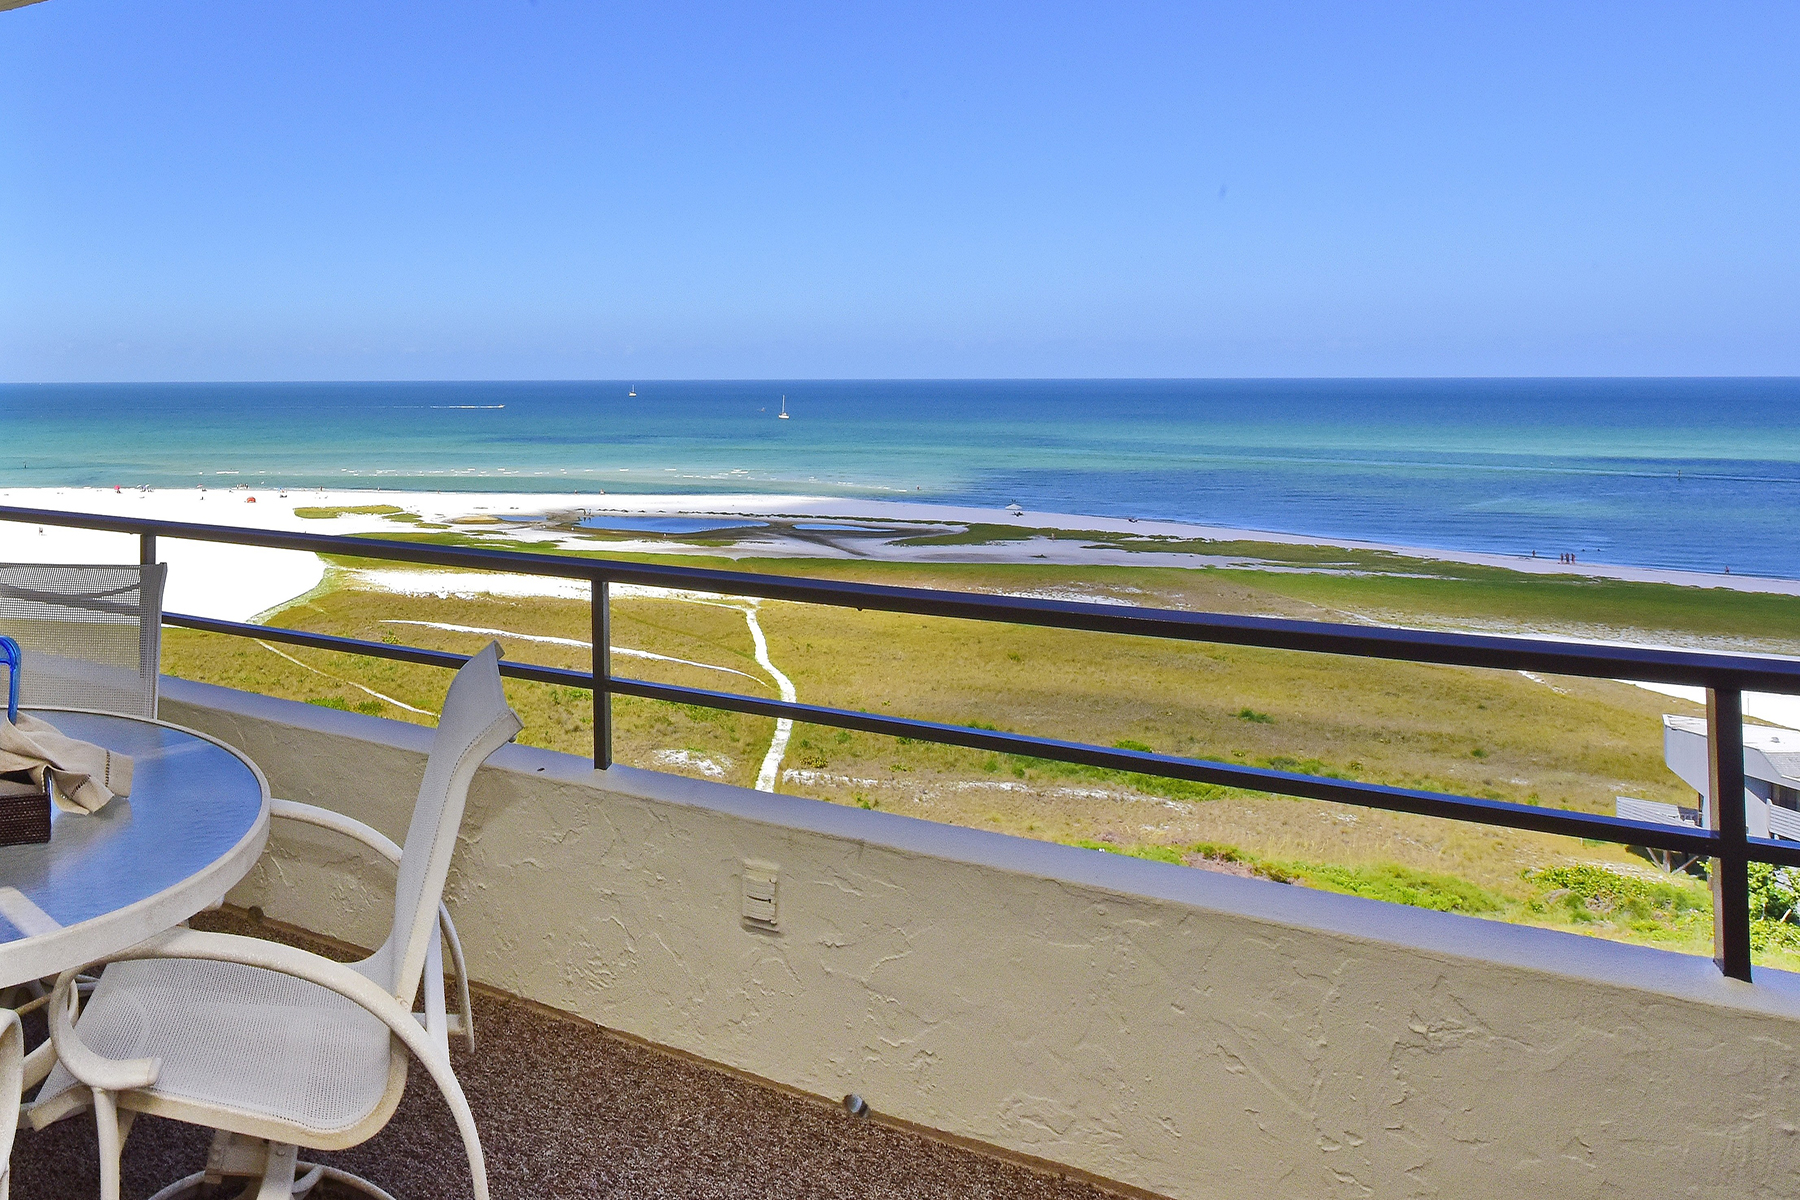 Condominium for Sale at SIESTA KEY 5300 Ocean Blvd PH3 Sarasota, Florida, 34242 United States